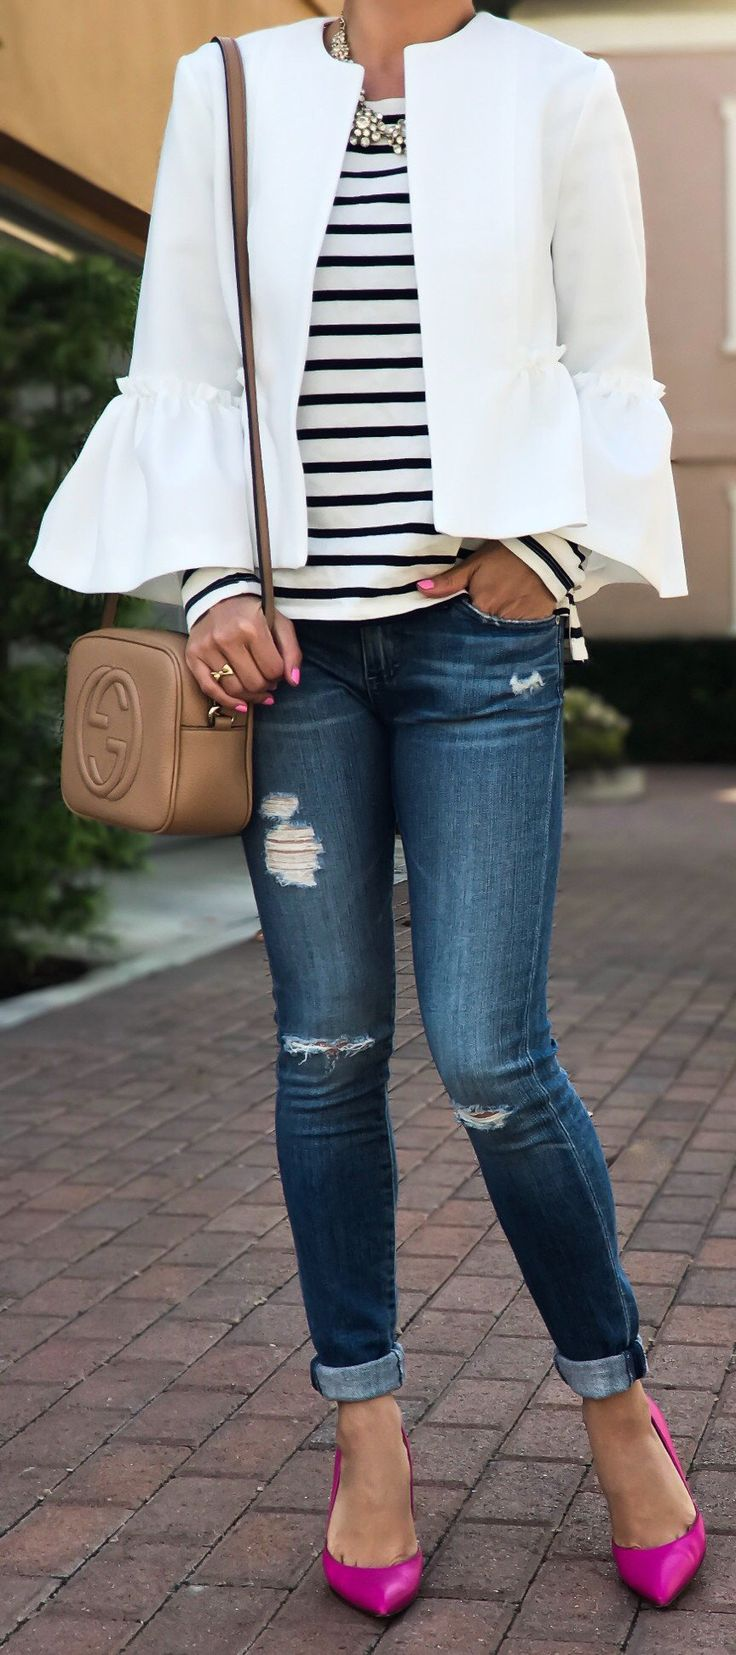 White Jacket & White Striped Top & Ripped Skinny Jeans & Pink Pumps